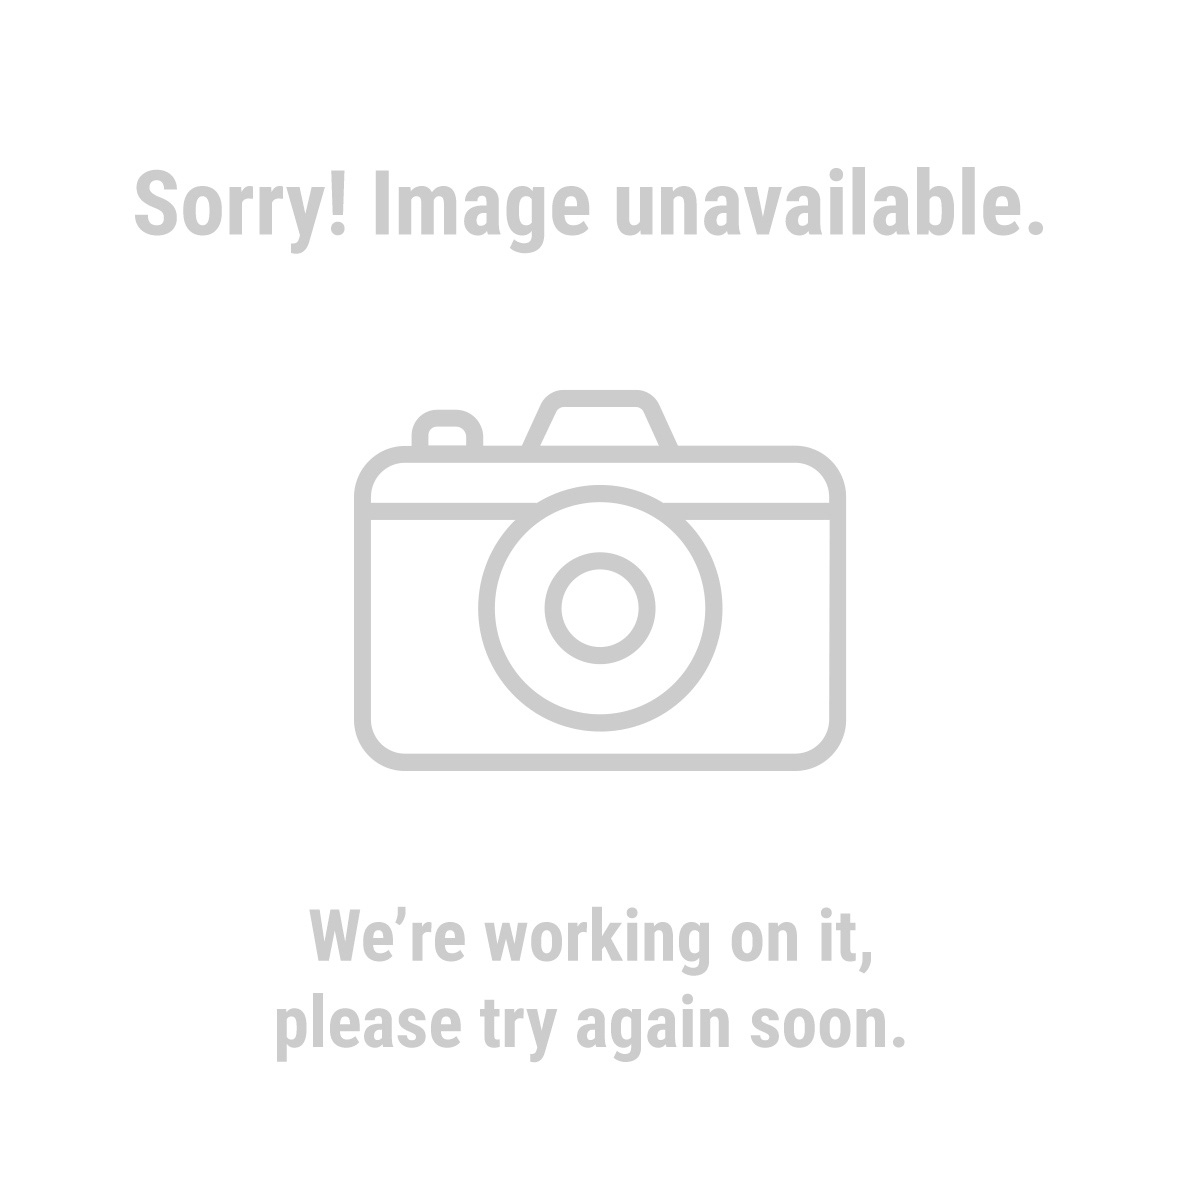 8 Piece Automotive Compression Test Kit